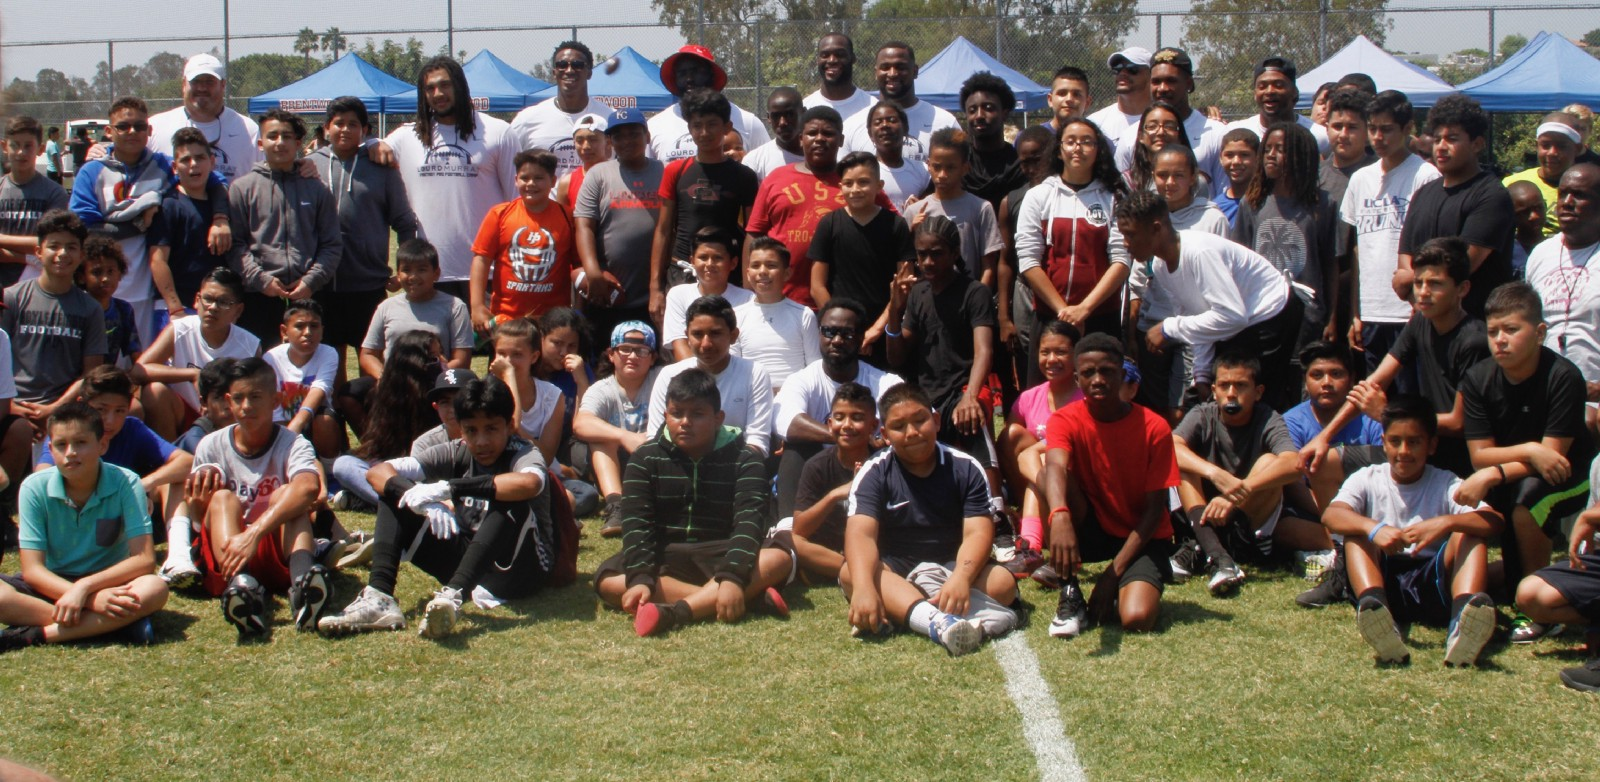 Kippsters Join Nfl Players At Fantasy Pro Football Camp